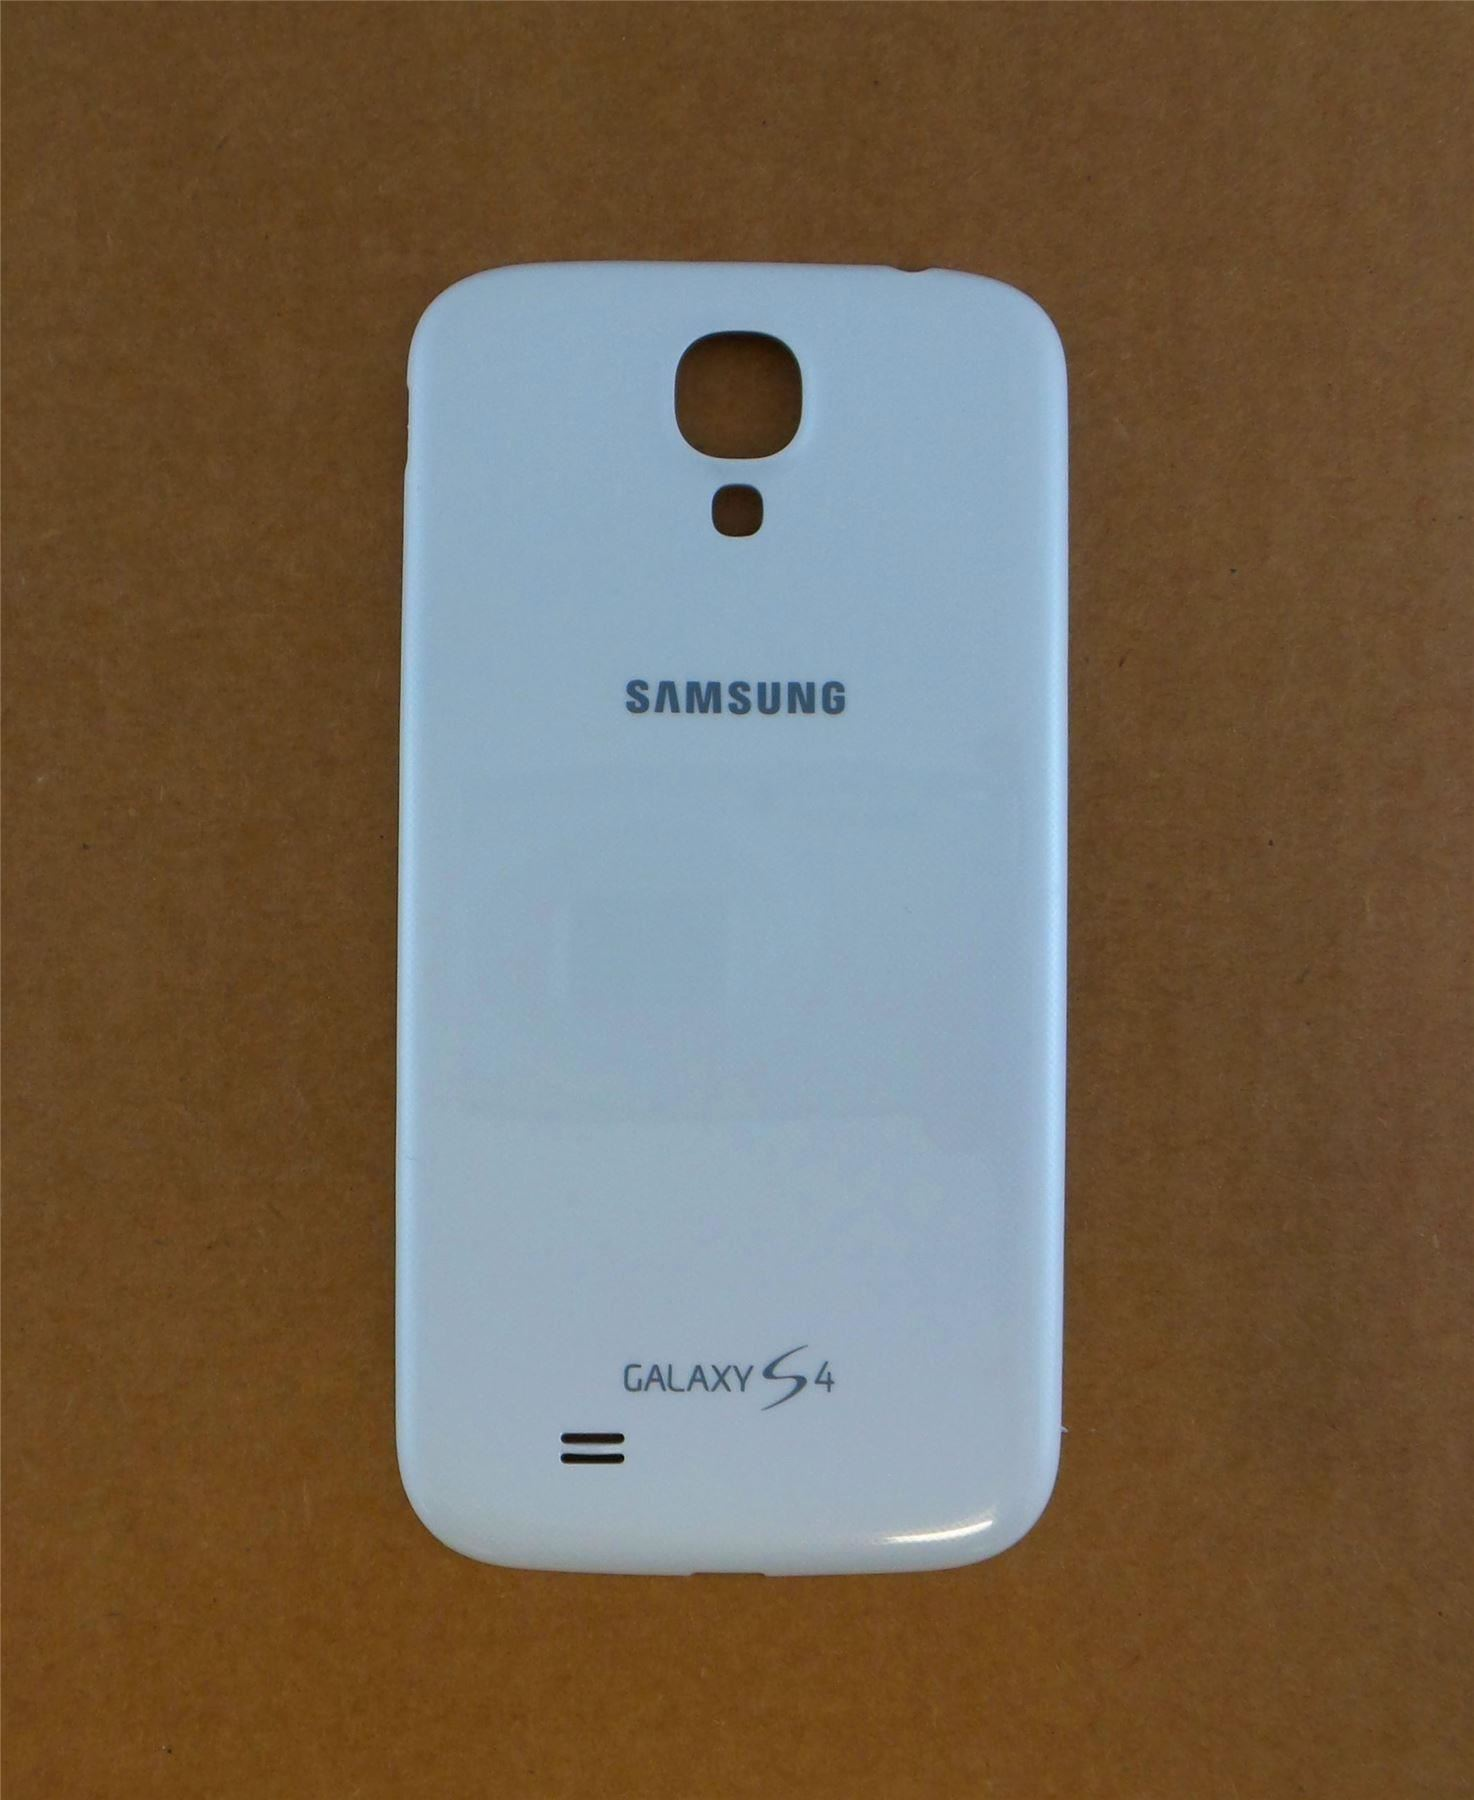 samsung galaxy s4 genuine battery door covers for at t verizon t mobile cricket. Black Bedroom Furniture Sets. Home Design Ideas